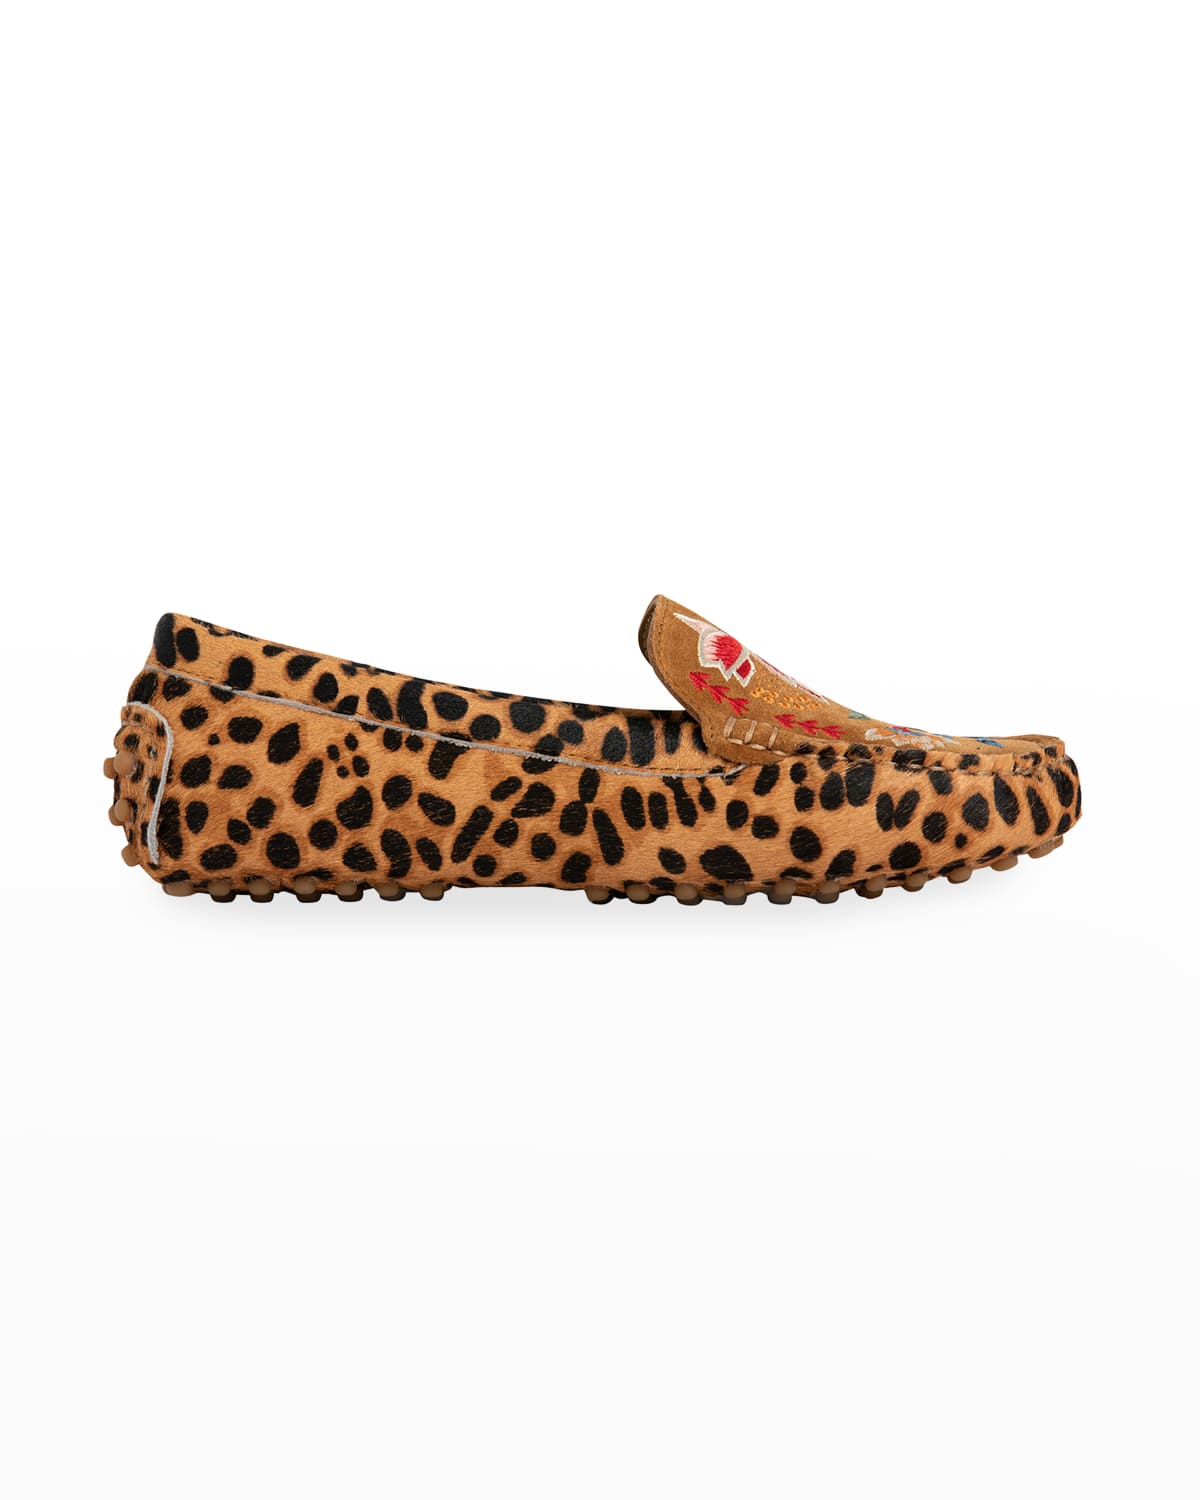 Taline Leopard Moccasin Loafers